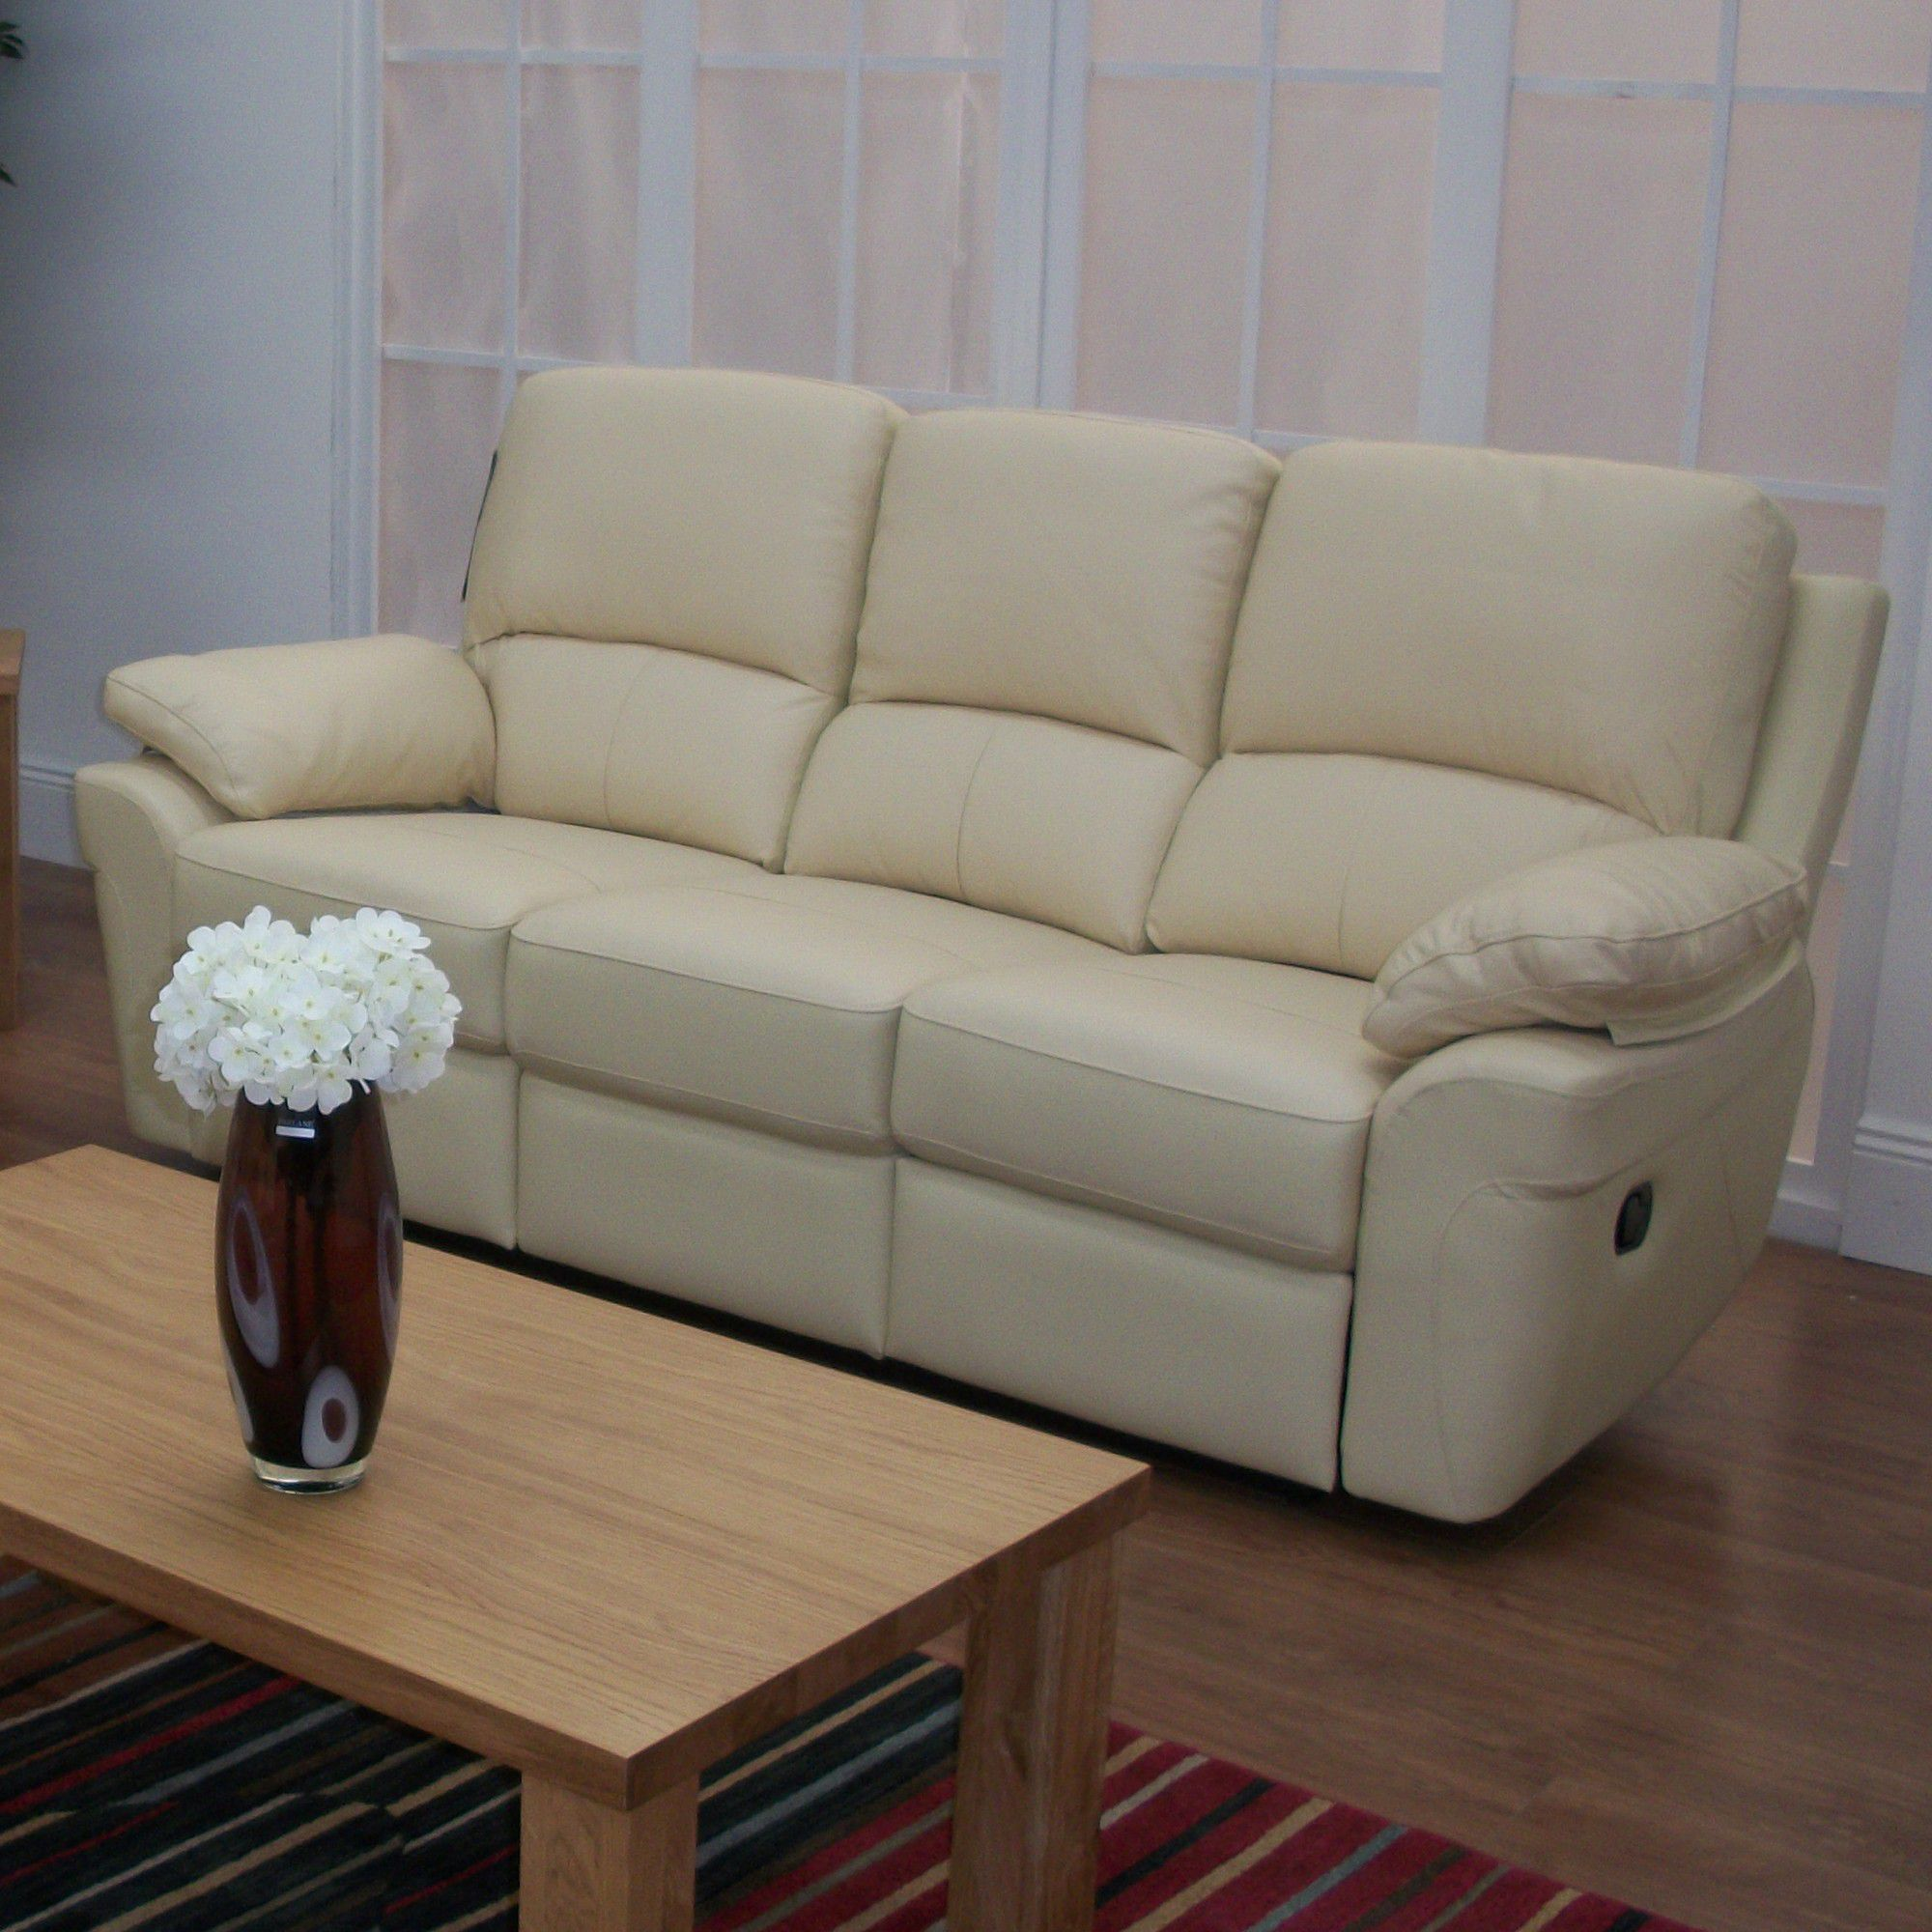 Furniture Link Monzano Three Seat Reclining Sofa in Ivory - Ivory at Tesco Direct